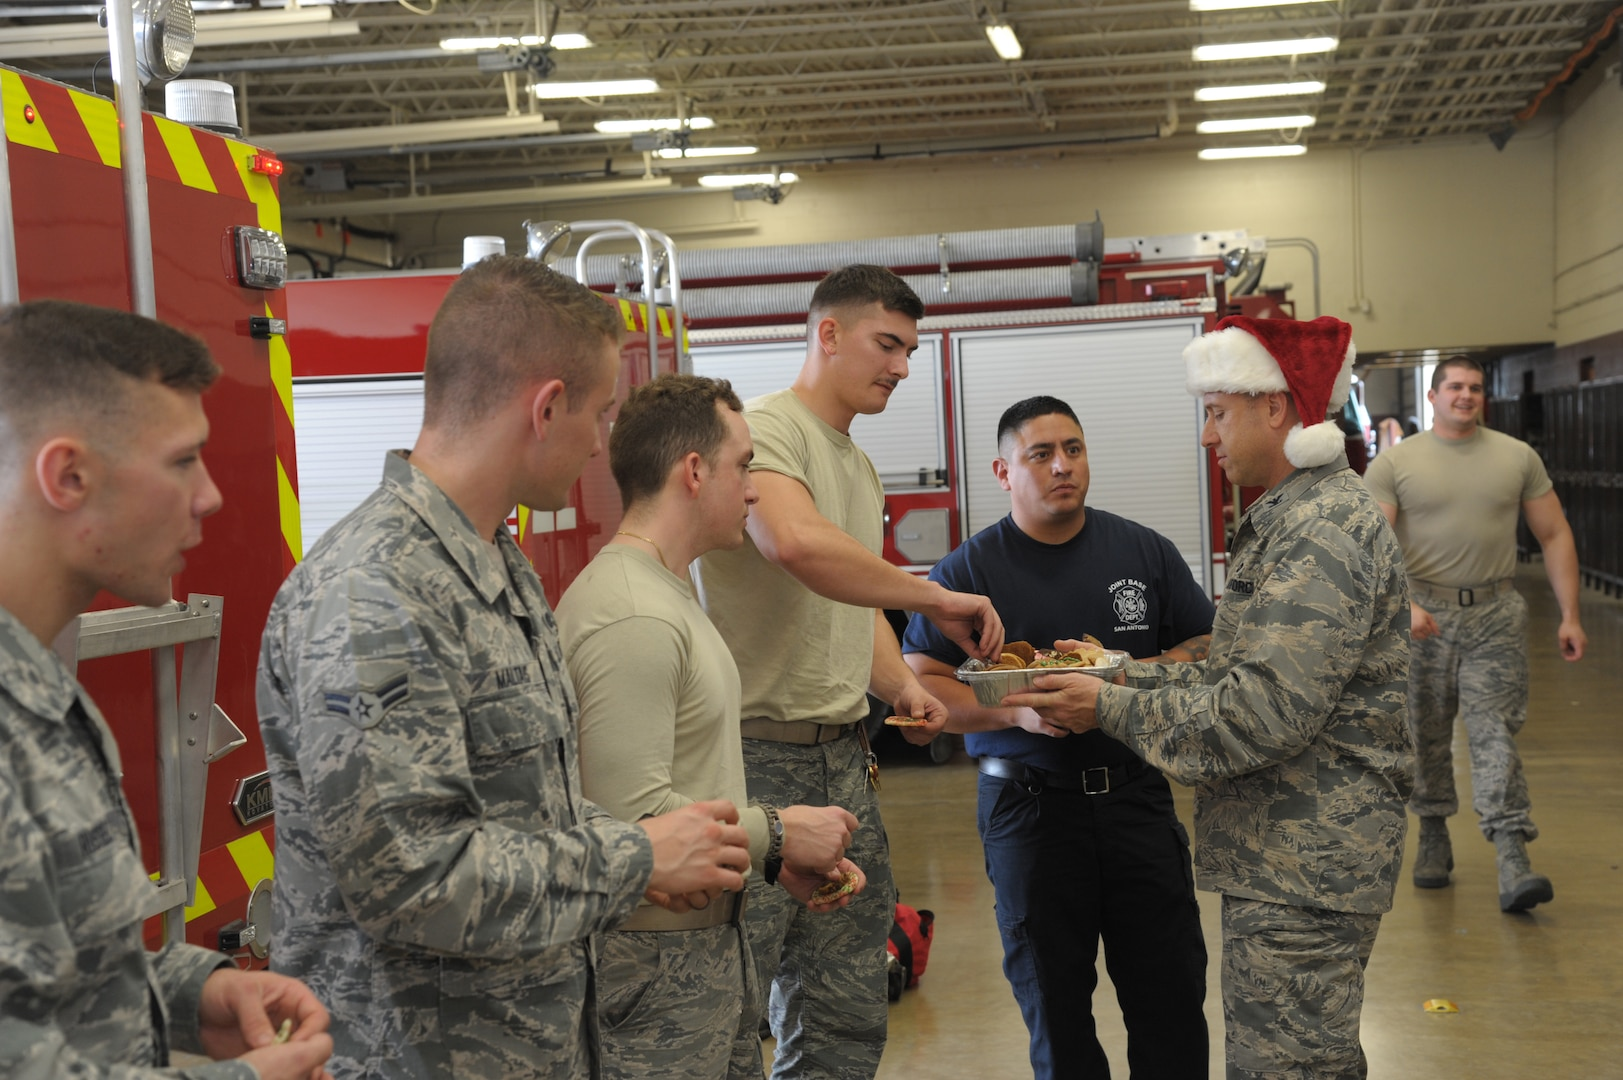 Col. Michael Gimbrone (right), 502nd Security Forces Logistics Support Group commander, delivers Christmas cookies to 502nd Civil Engineer Squadron firefighters Dec. 11 at JBSA-Randolph.